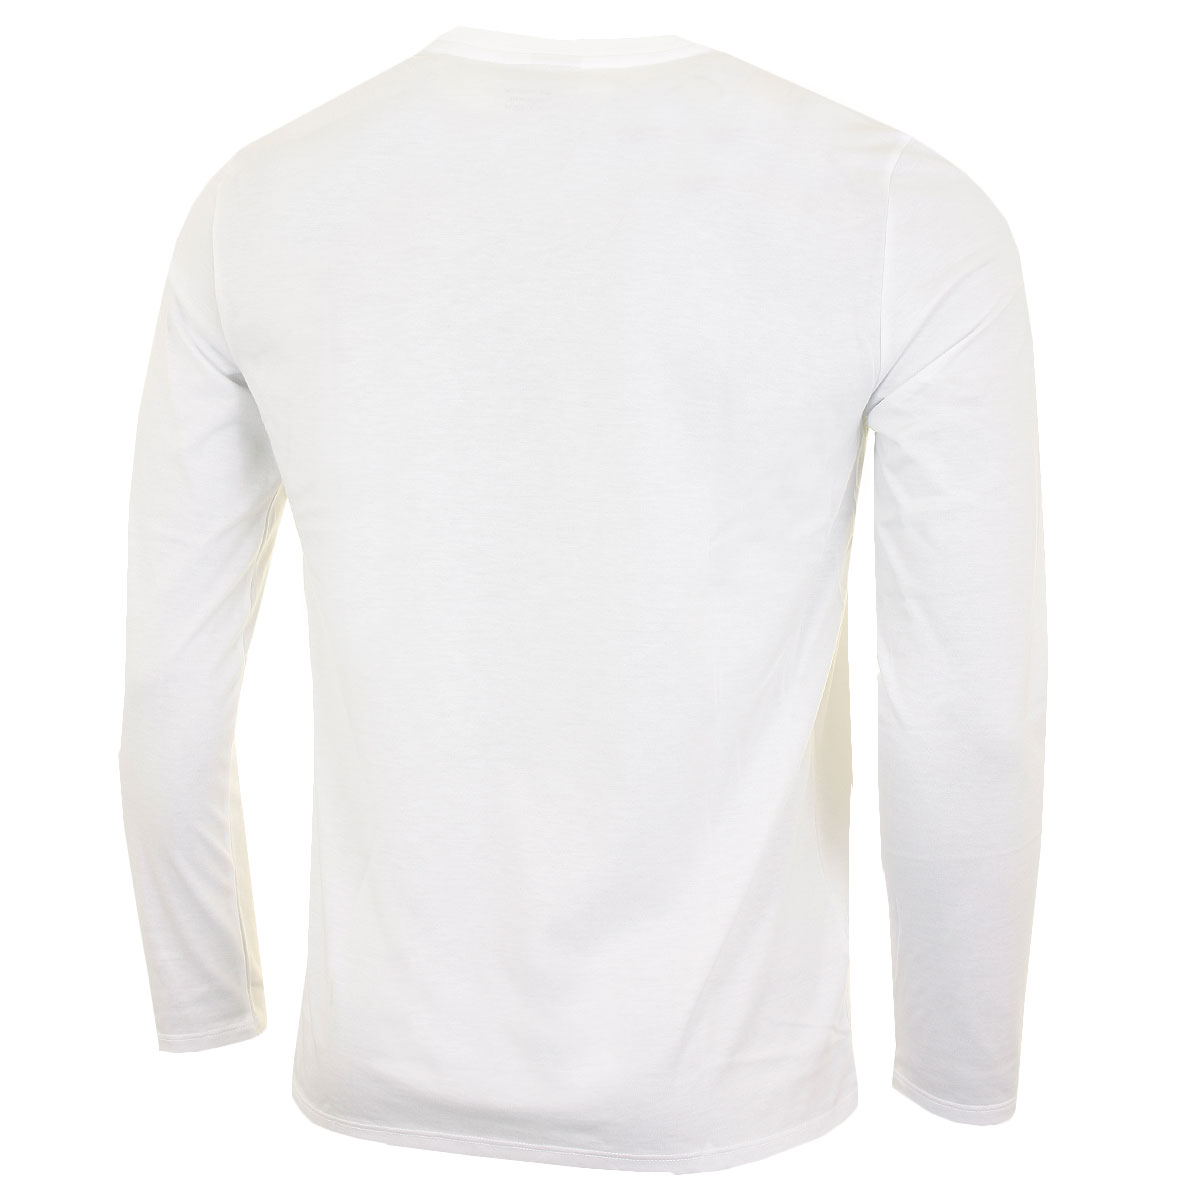 Lacoste-Mens-2019-LS-Crew-Neck-Cotton-T-Shirt-TH6712-Long-Sleeve-Tee-27-OFF-RRP thumbnail 14